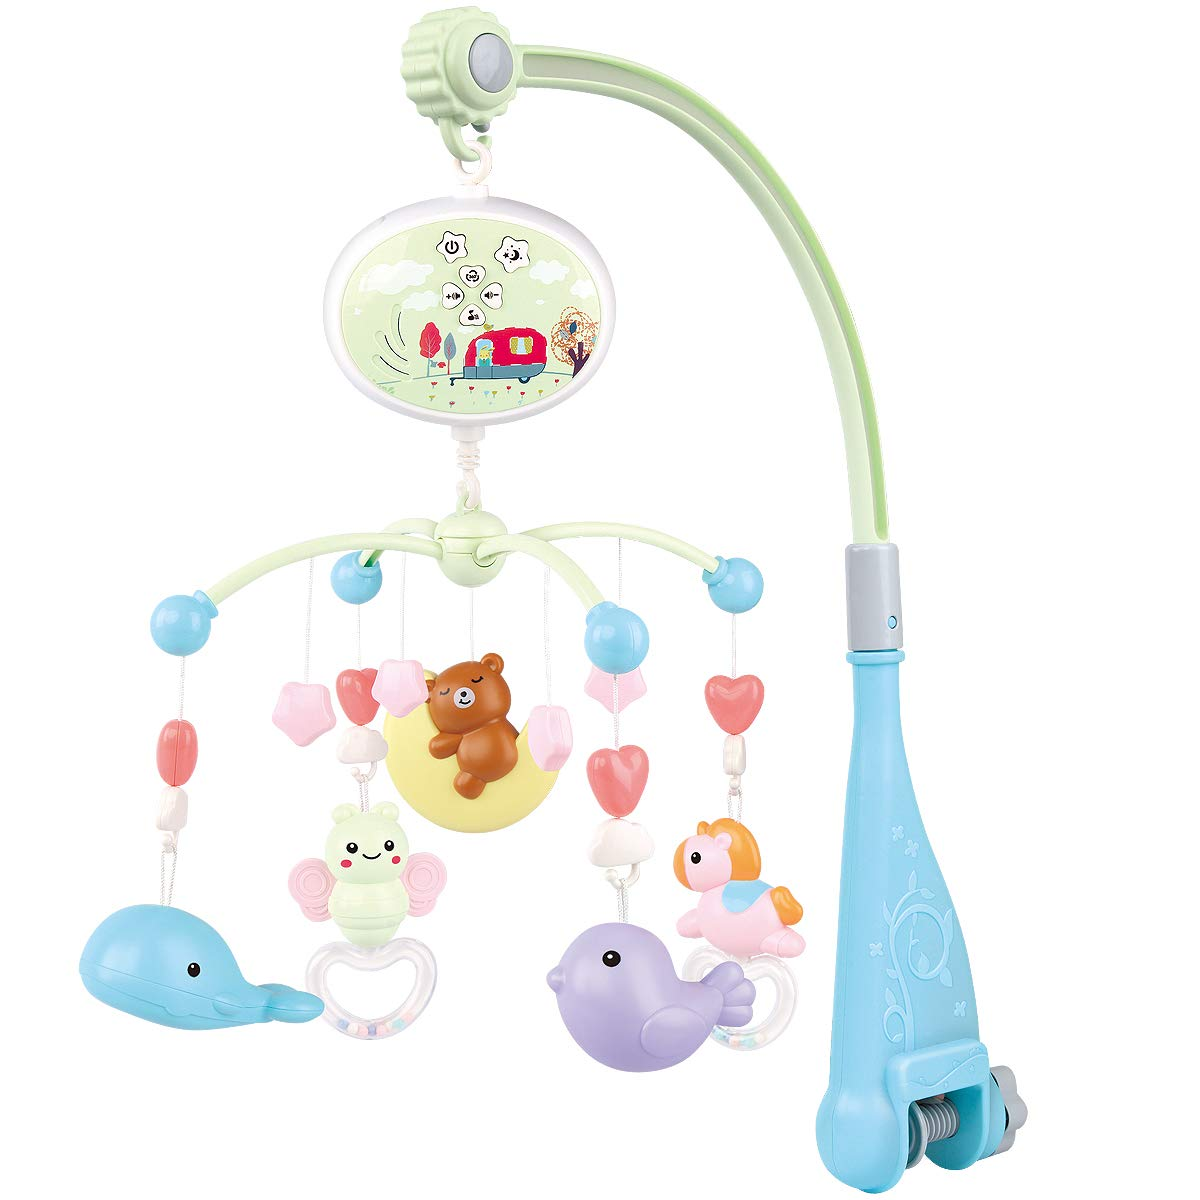 Fistone Baby Musical San Diego Mall Max 43% OFF Crib Mobile and Night Light Projection with